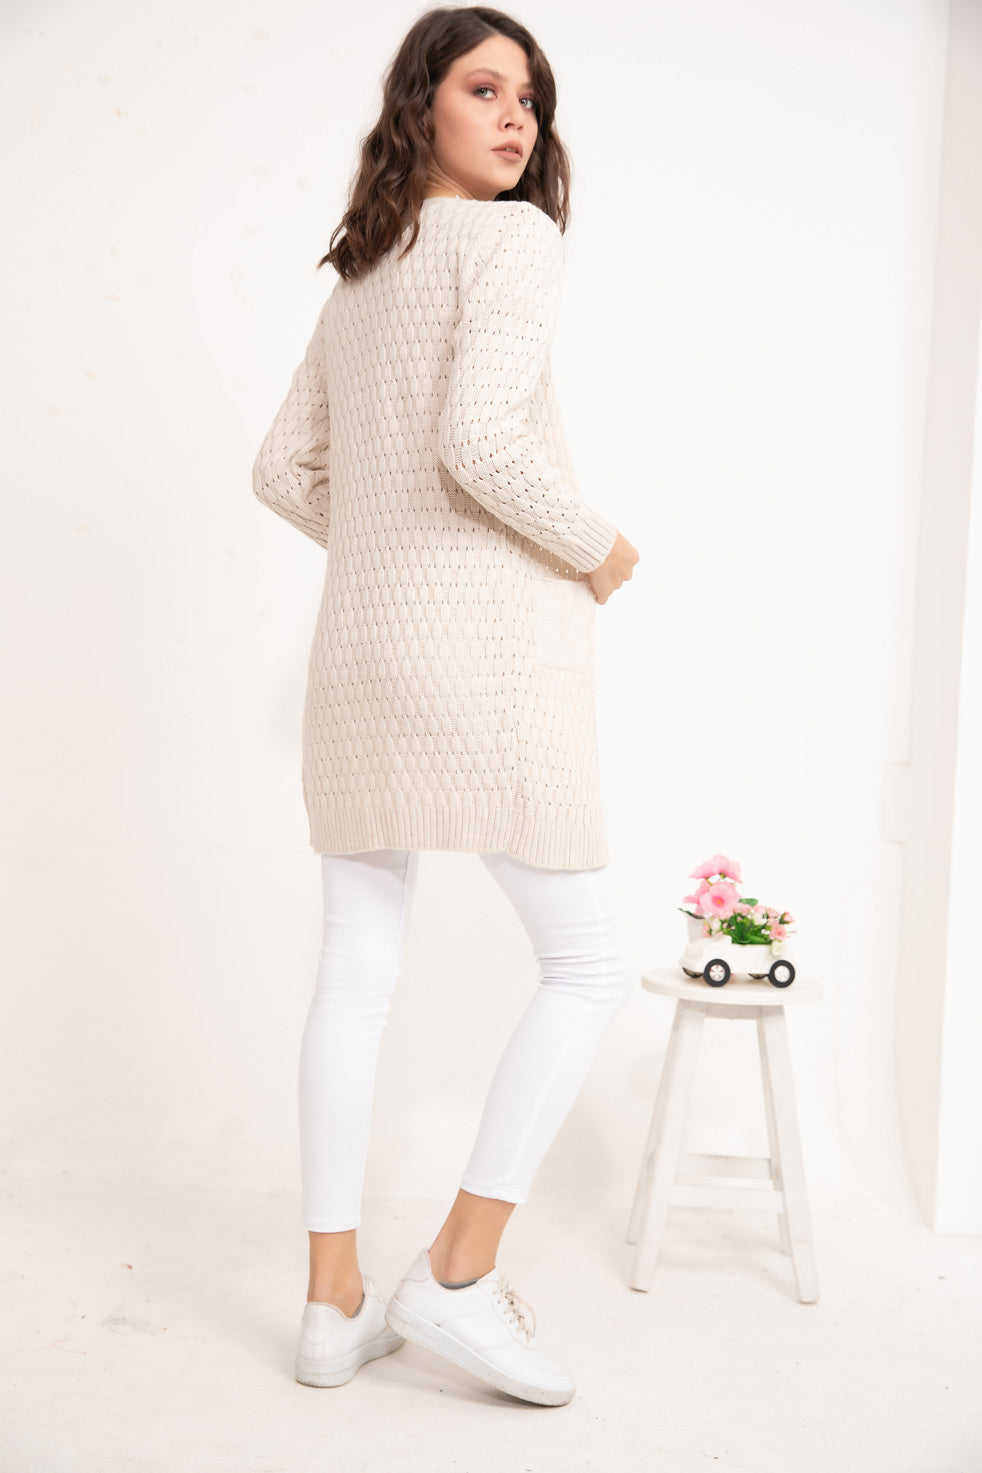 Stone Patterned Cardigan